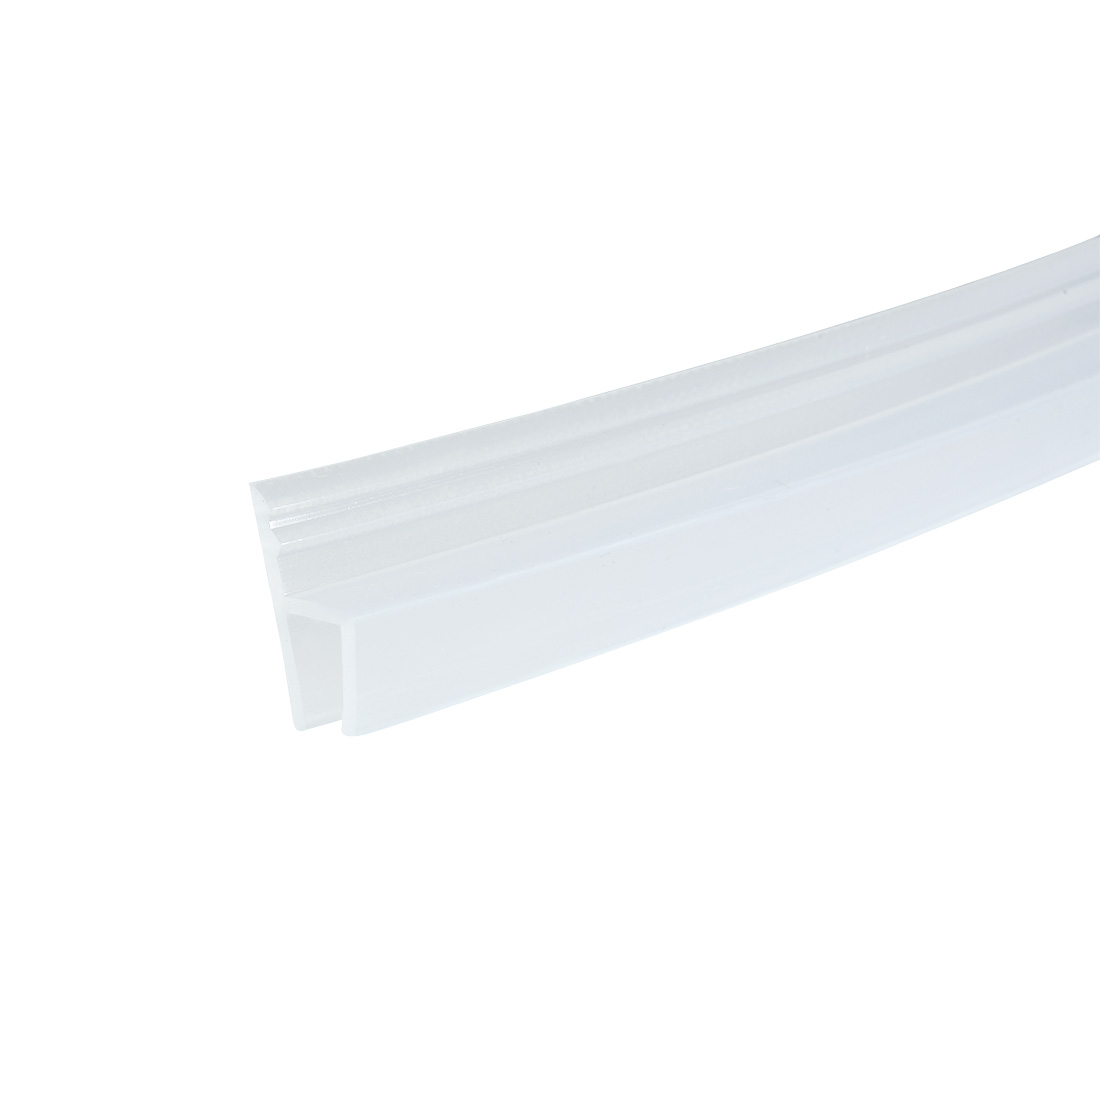 36-inch h Shaped Frameless Window Shower Door Seal Clear for 6mm Glass